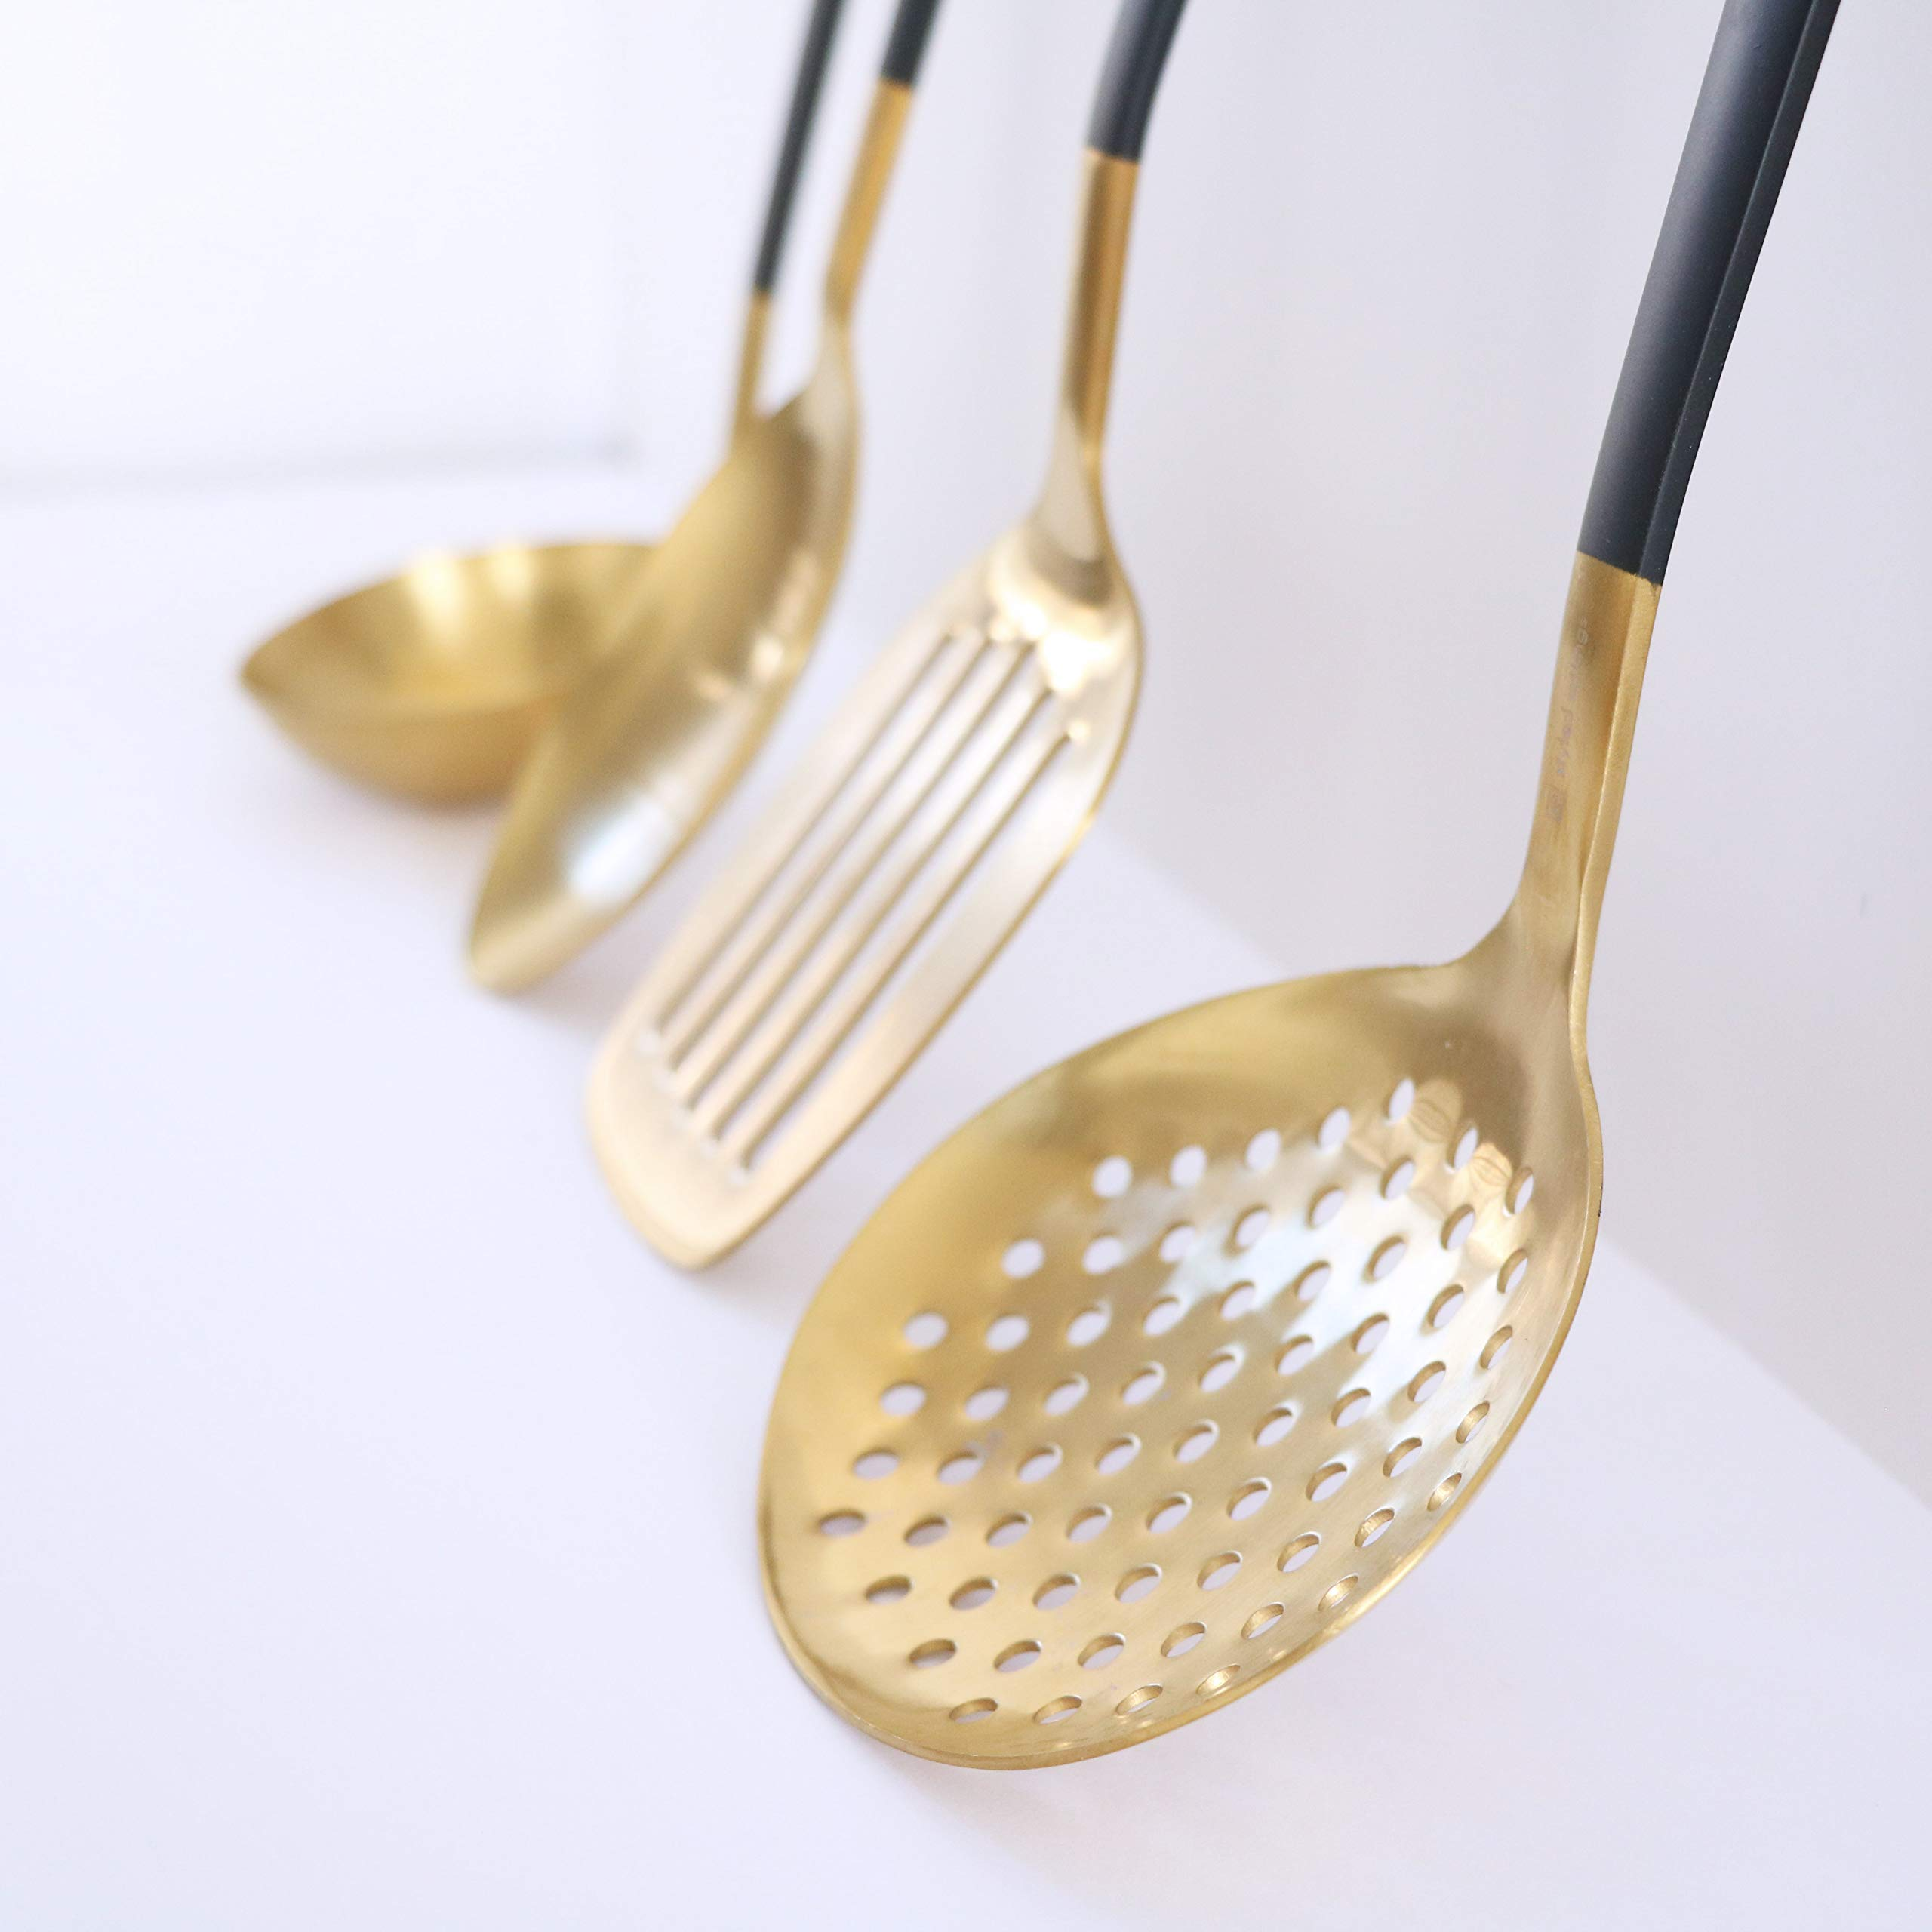 Black and Gold Utensil Set for Cooking and Serving, Stainless Steel Serving Utensils include - Black and Gold Metal Ladle, Skimmer, Serving Spoon, Turner: Gold Serving Sets by STYLED SETTINGS (Image #3)